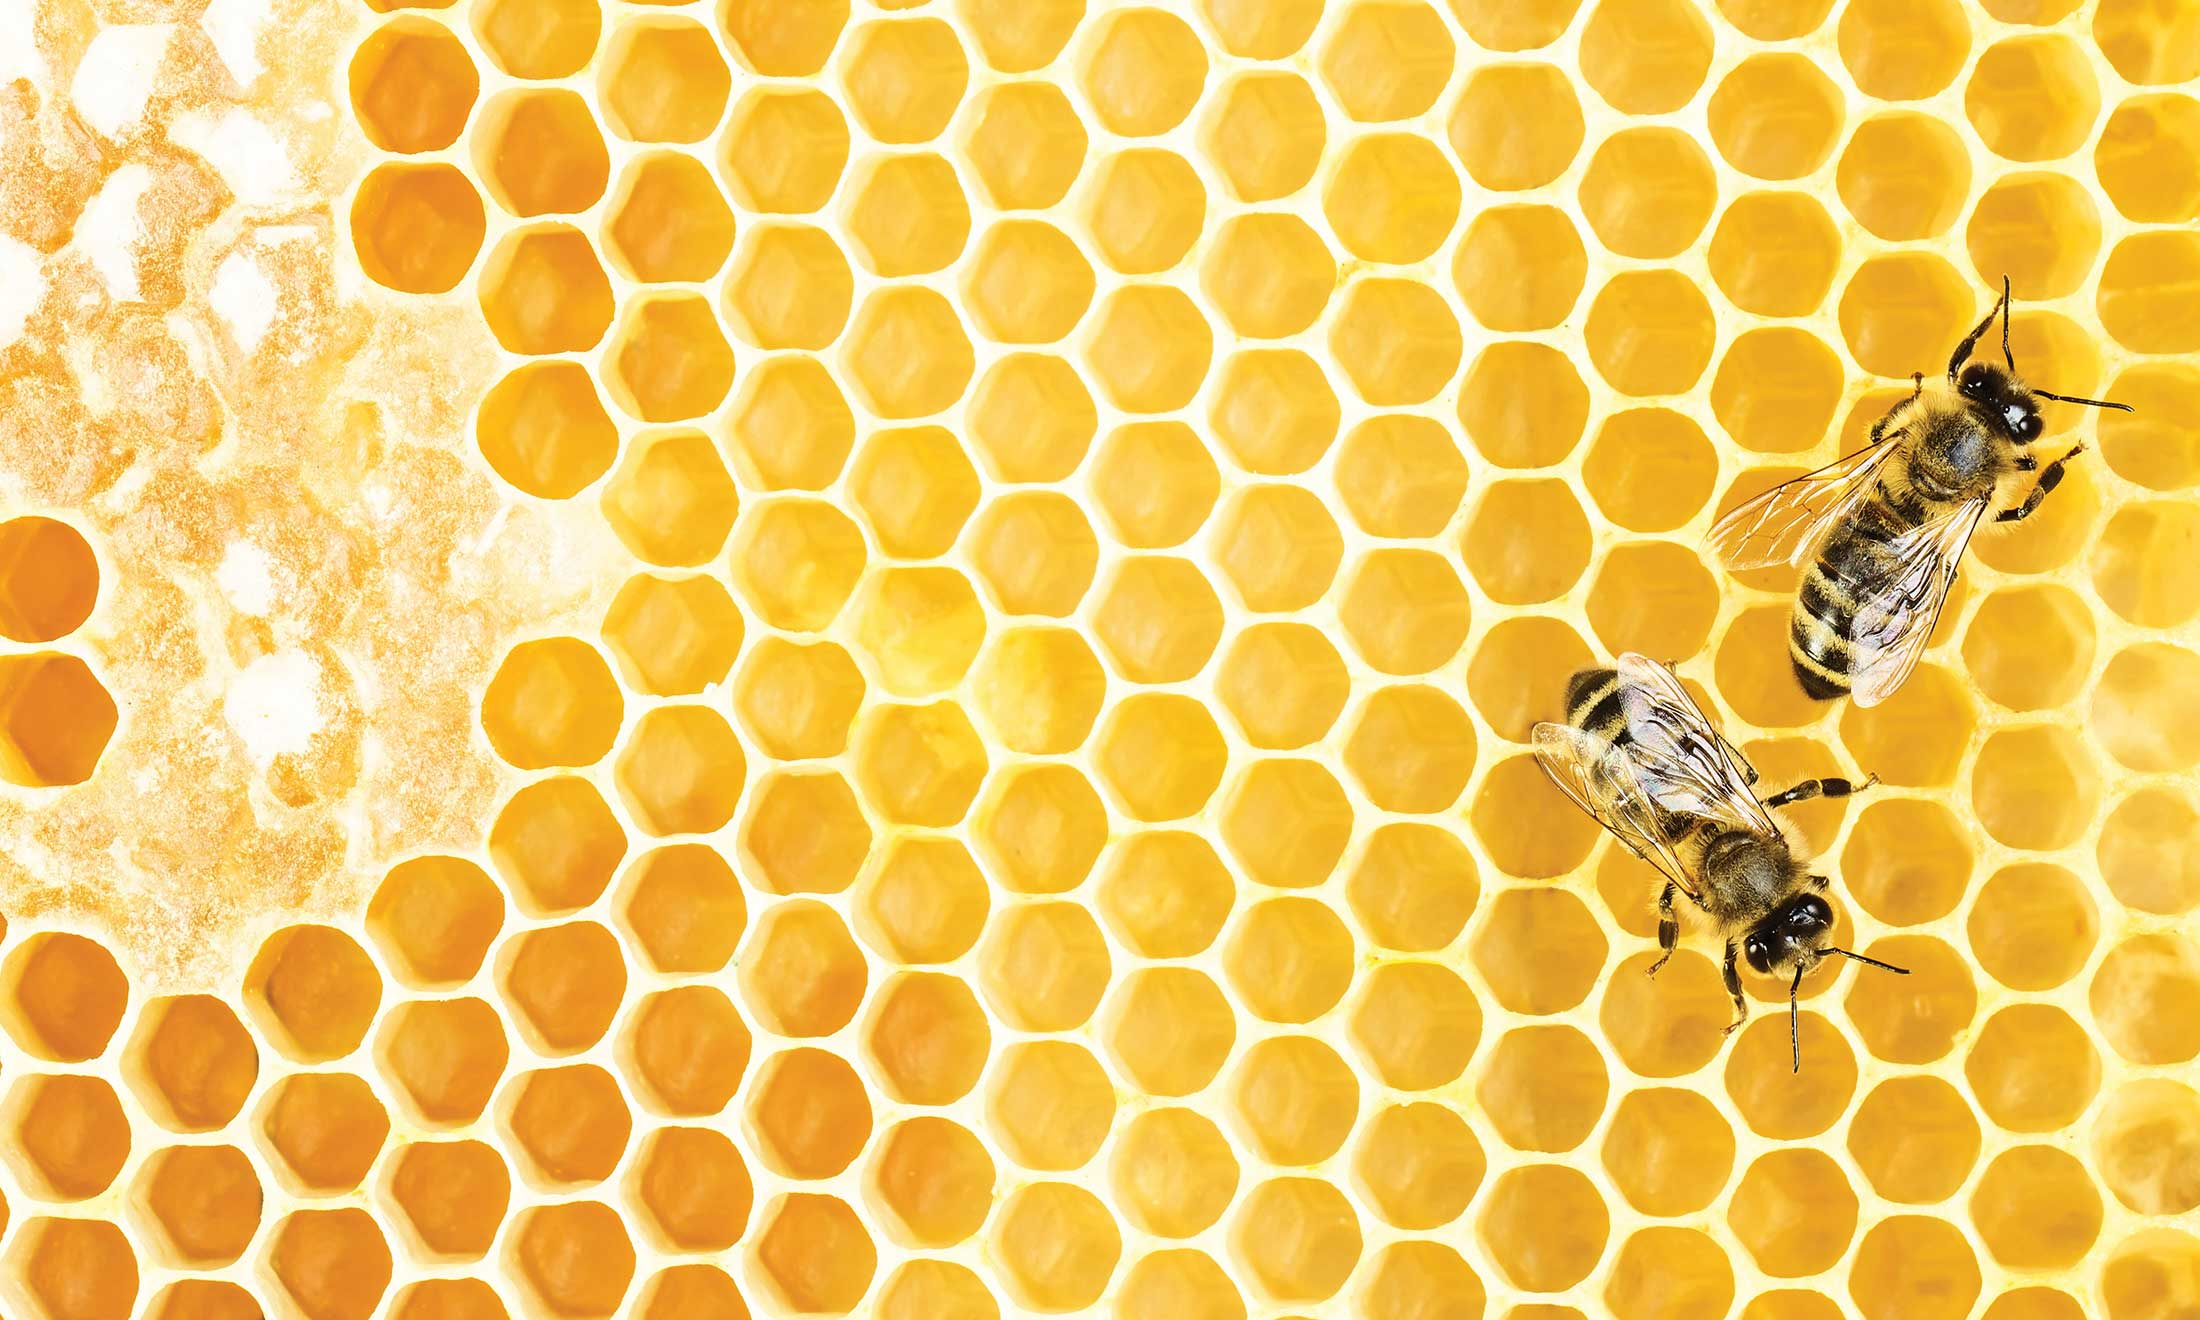 honeybee crawling on a yellow honeycomb